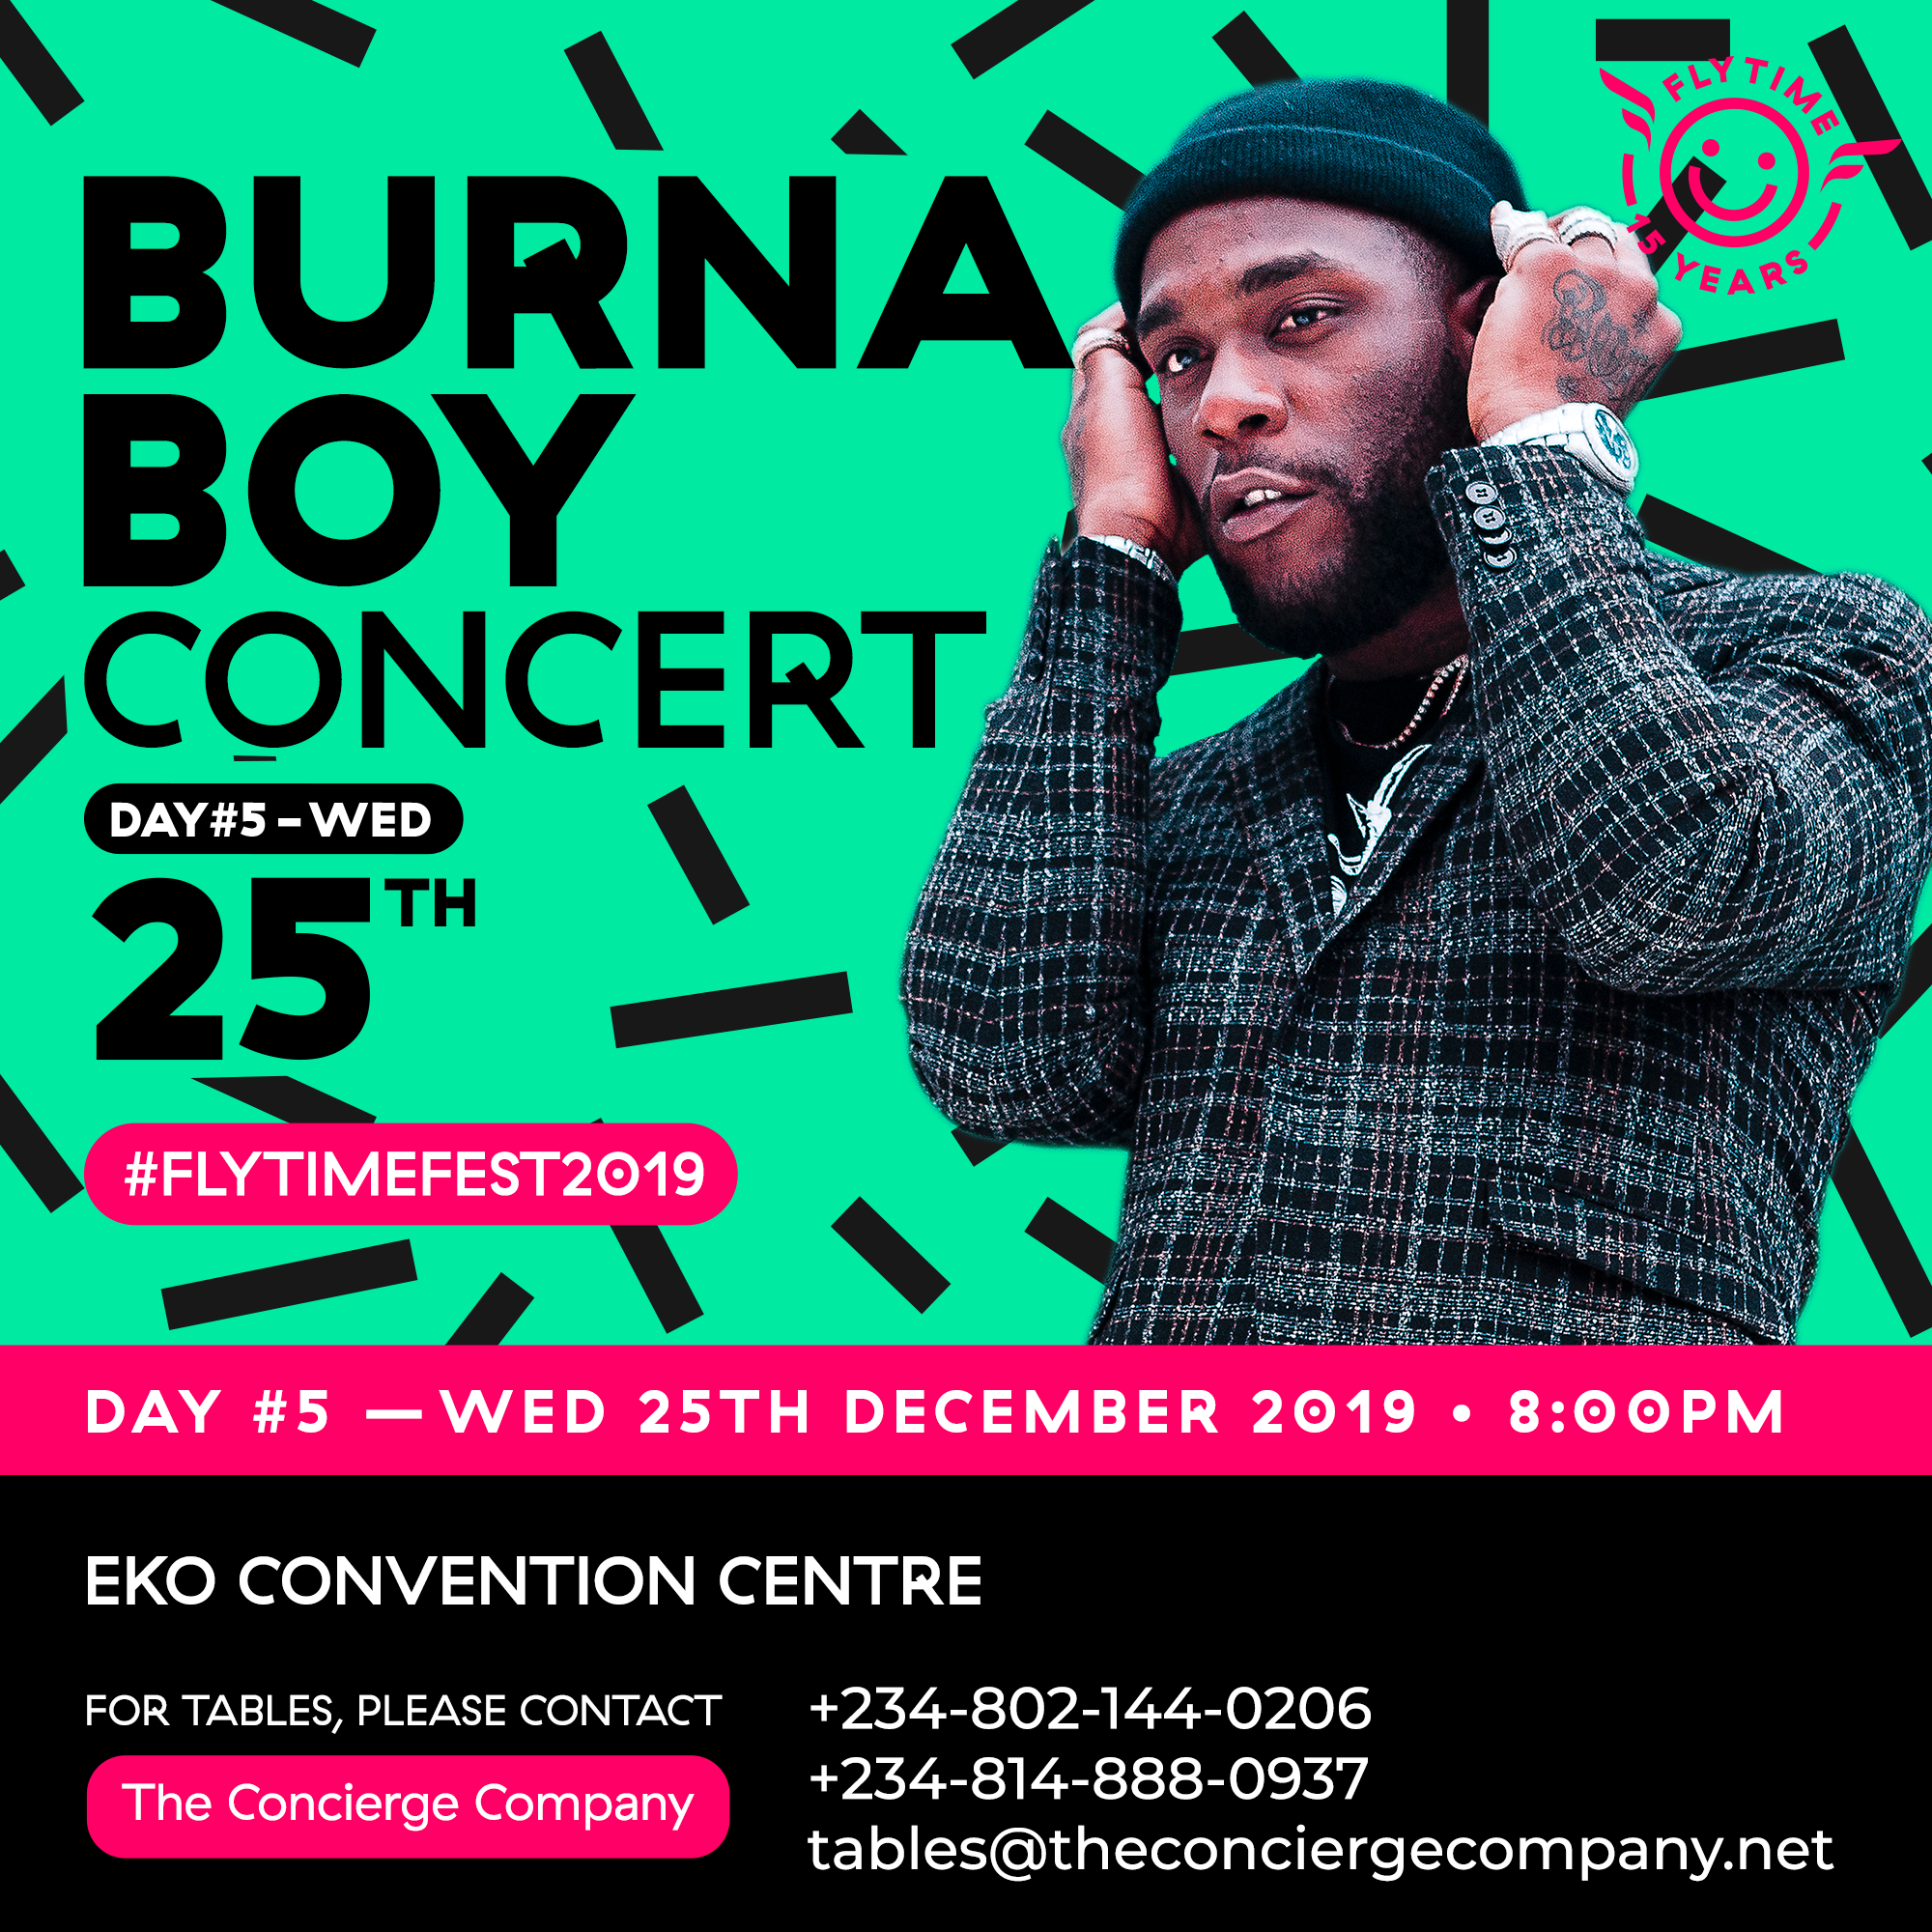 CHRISTMAS DAY WITH BURNA BOY LIVE AT THE FLYTIME MUSIC FESTIVAL!